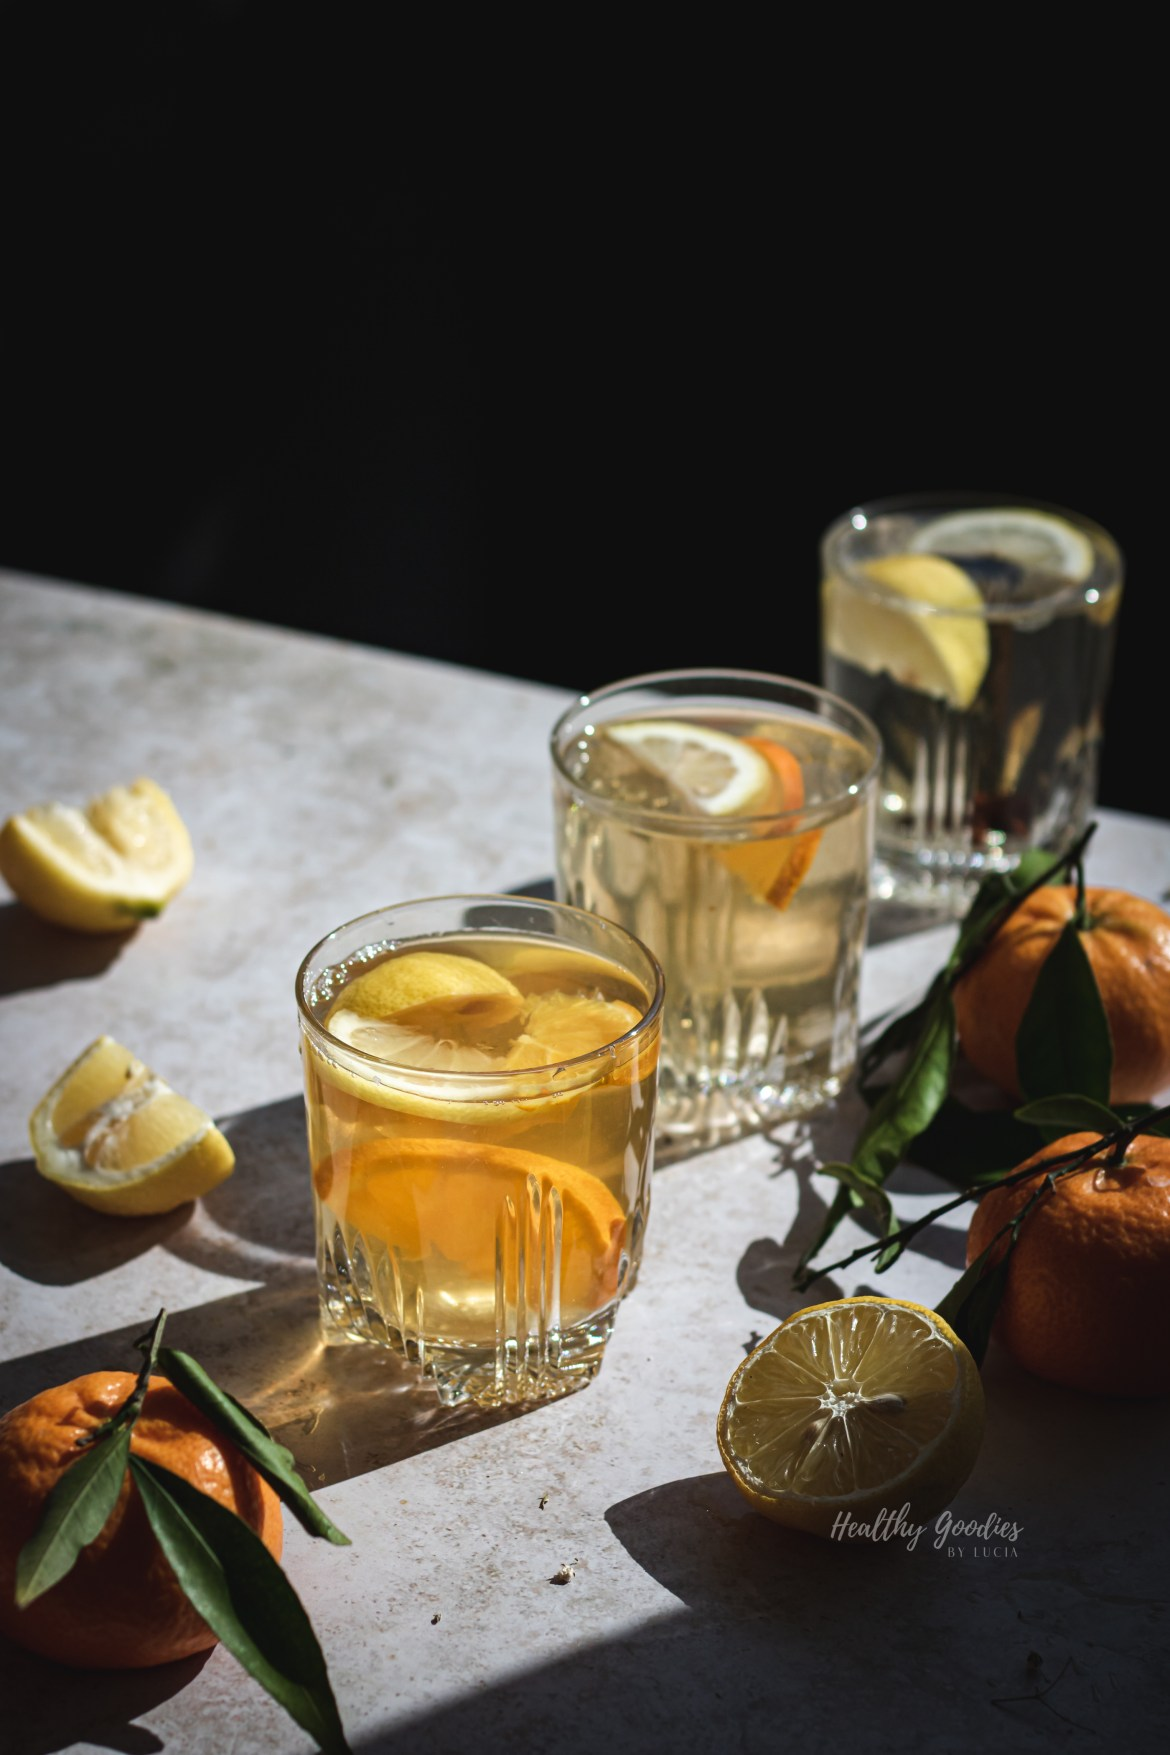 Photography Challenge #3 Harsh light | Healthy Goodies by Lucia Marecak